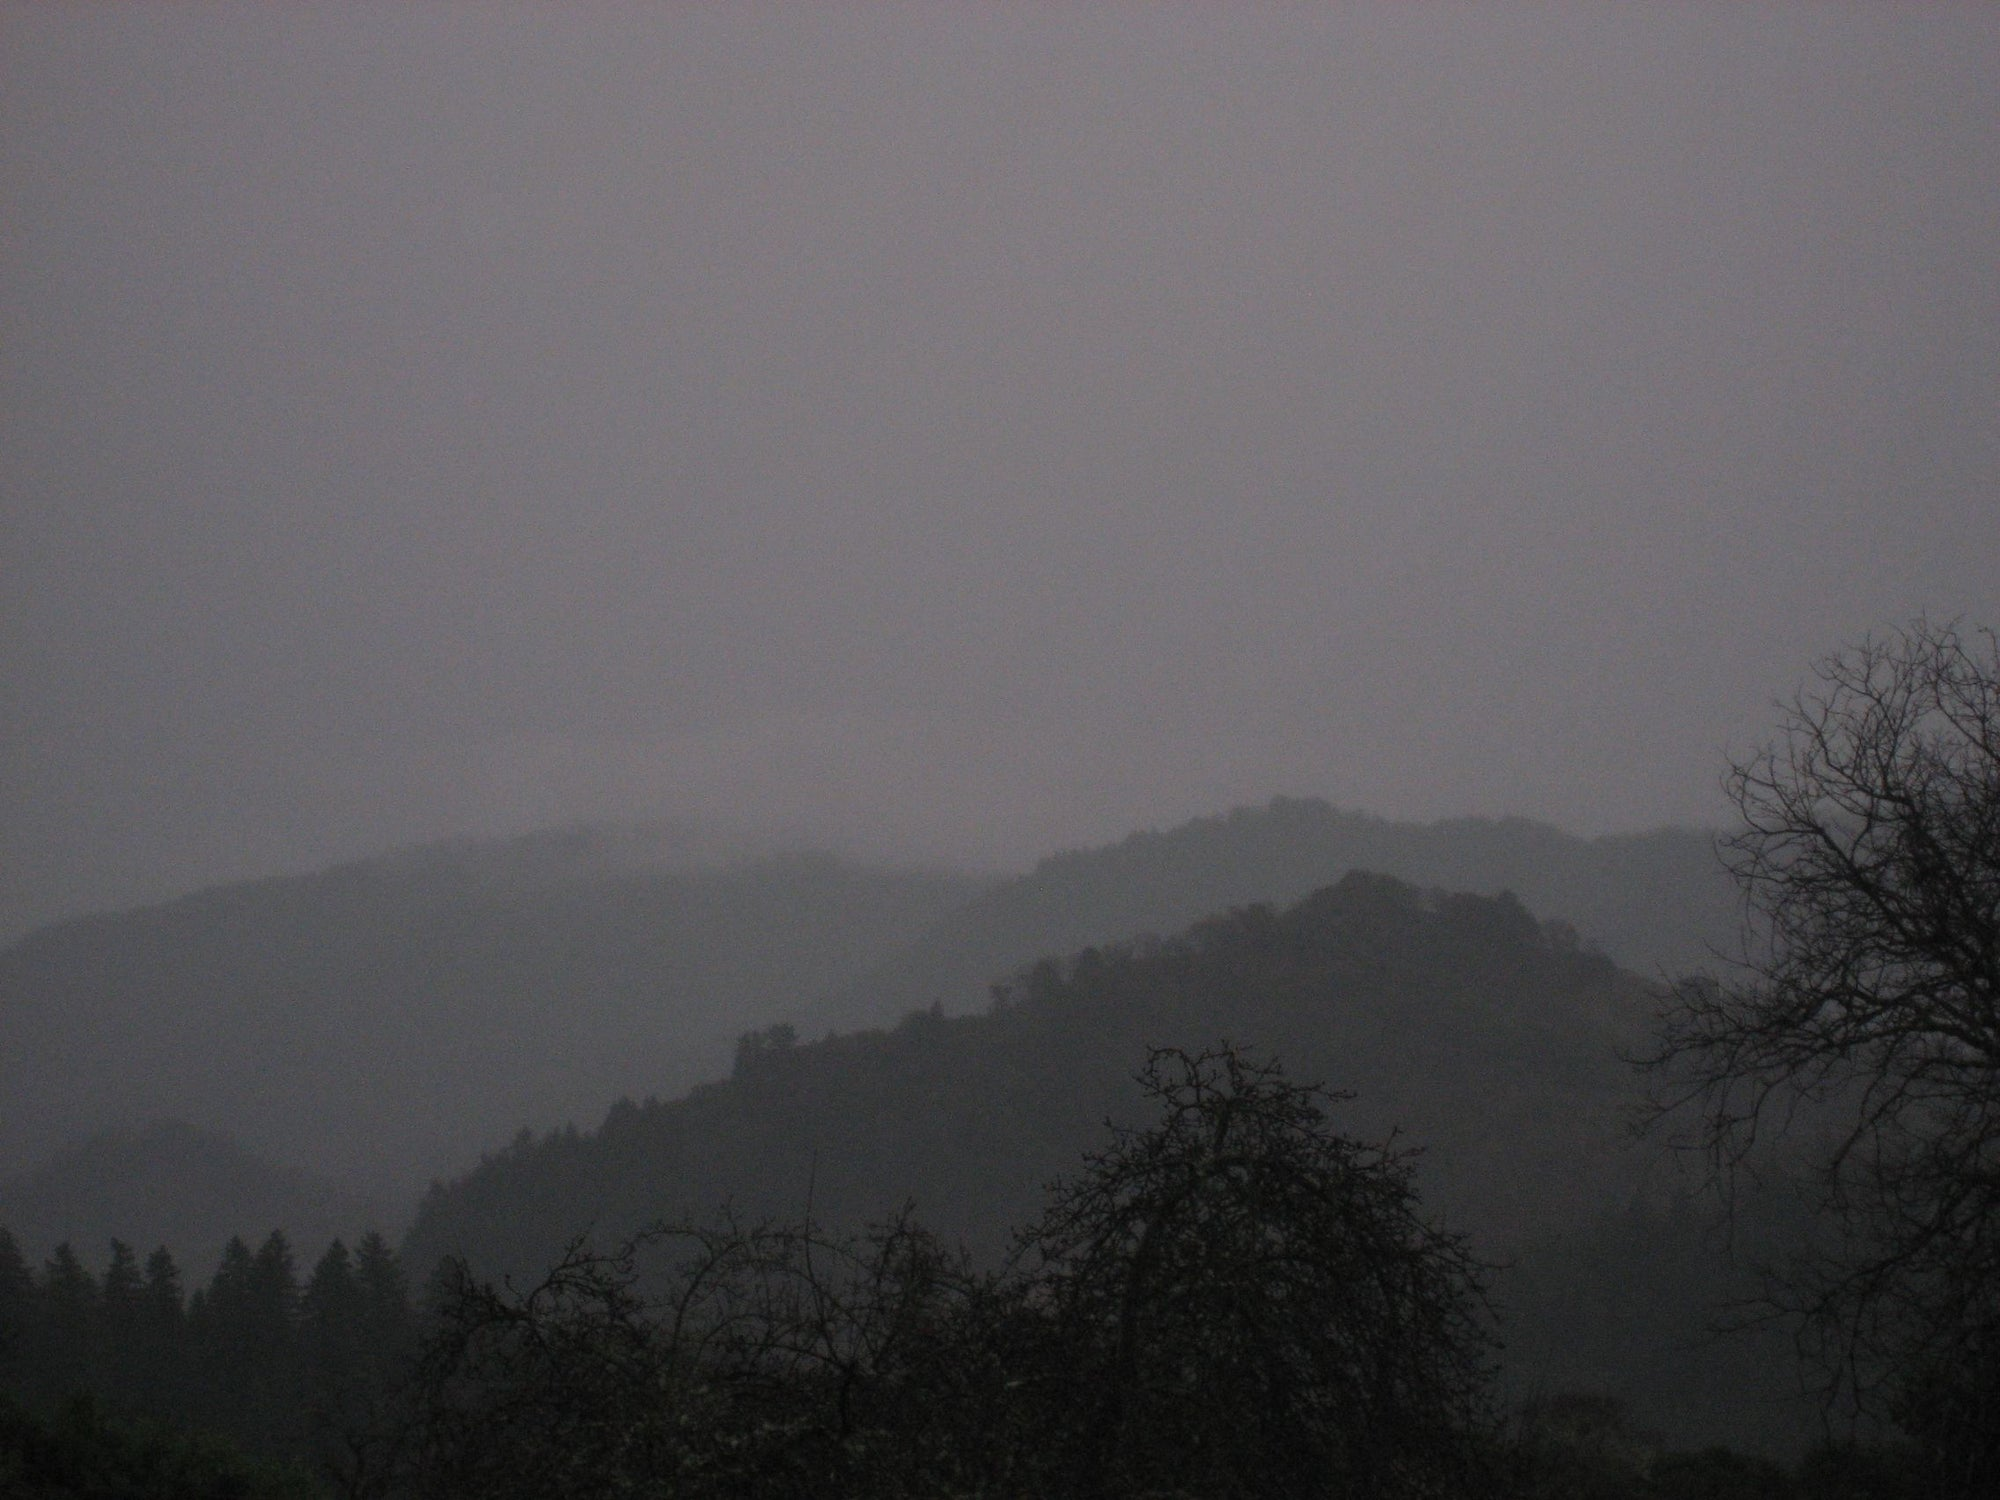 <I>Winter Dusk</I><br>Mendocino, California, 2011<br><br>GC0003